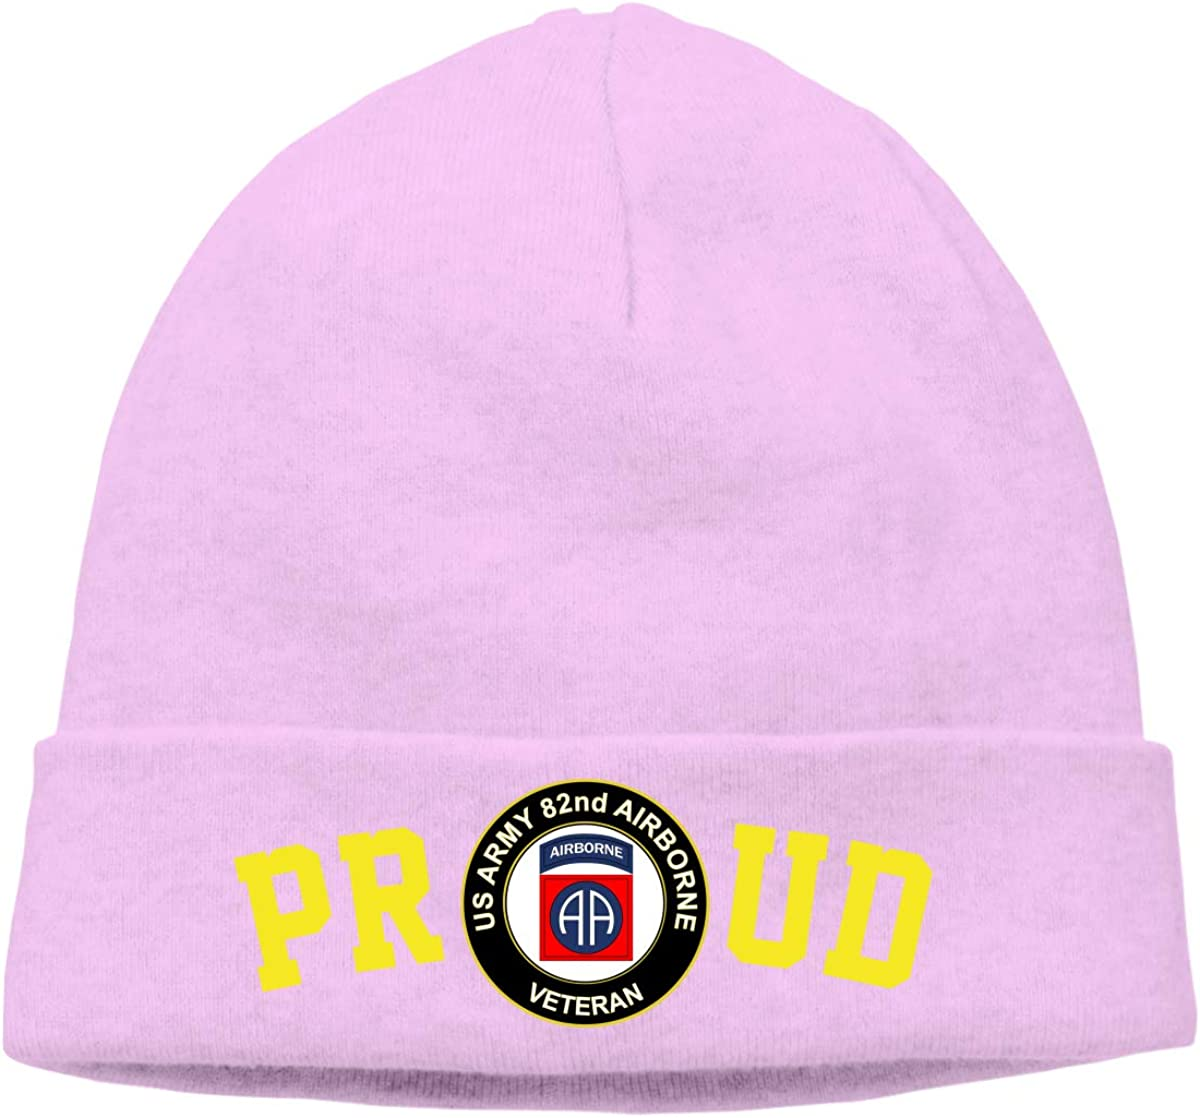 FORDSAN CP Proud US Army Veteran 82nd Airborne Mens Beanie Cap Skull Cap Winter Warm Knitting Hats.